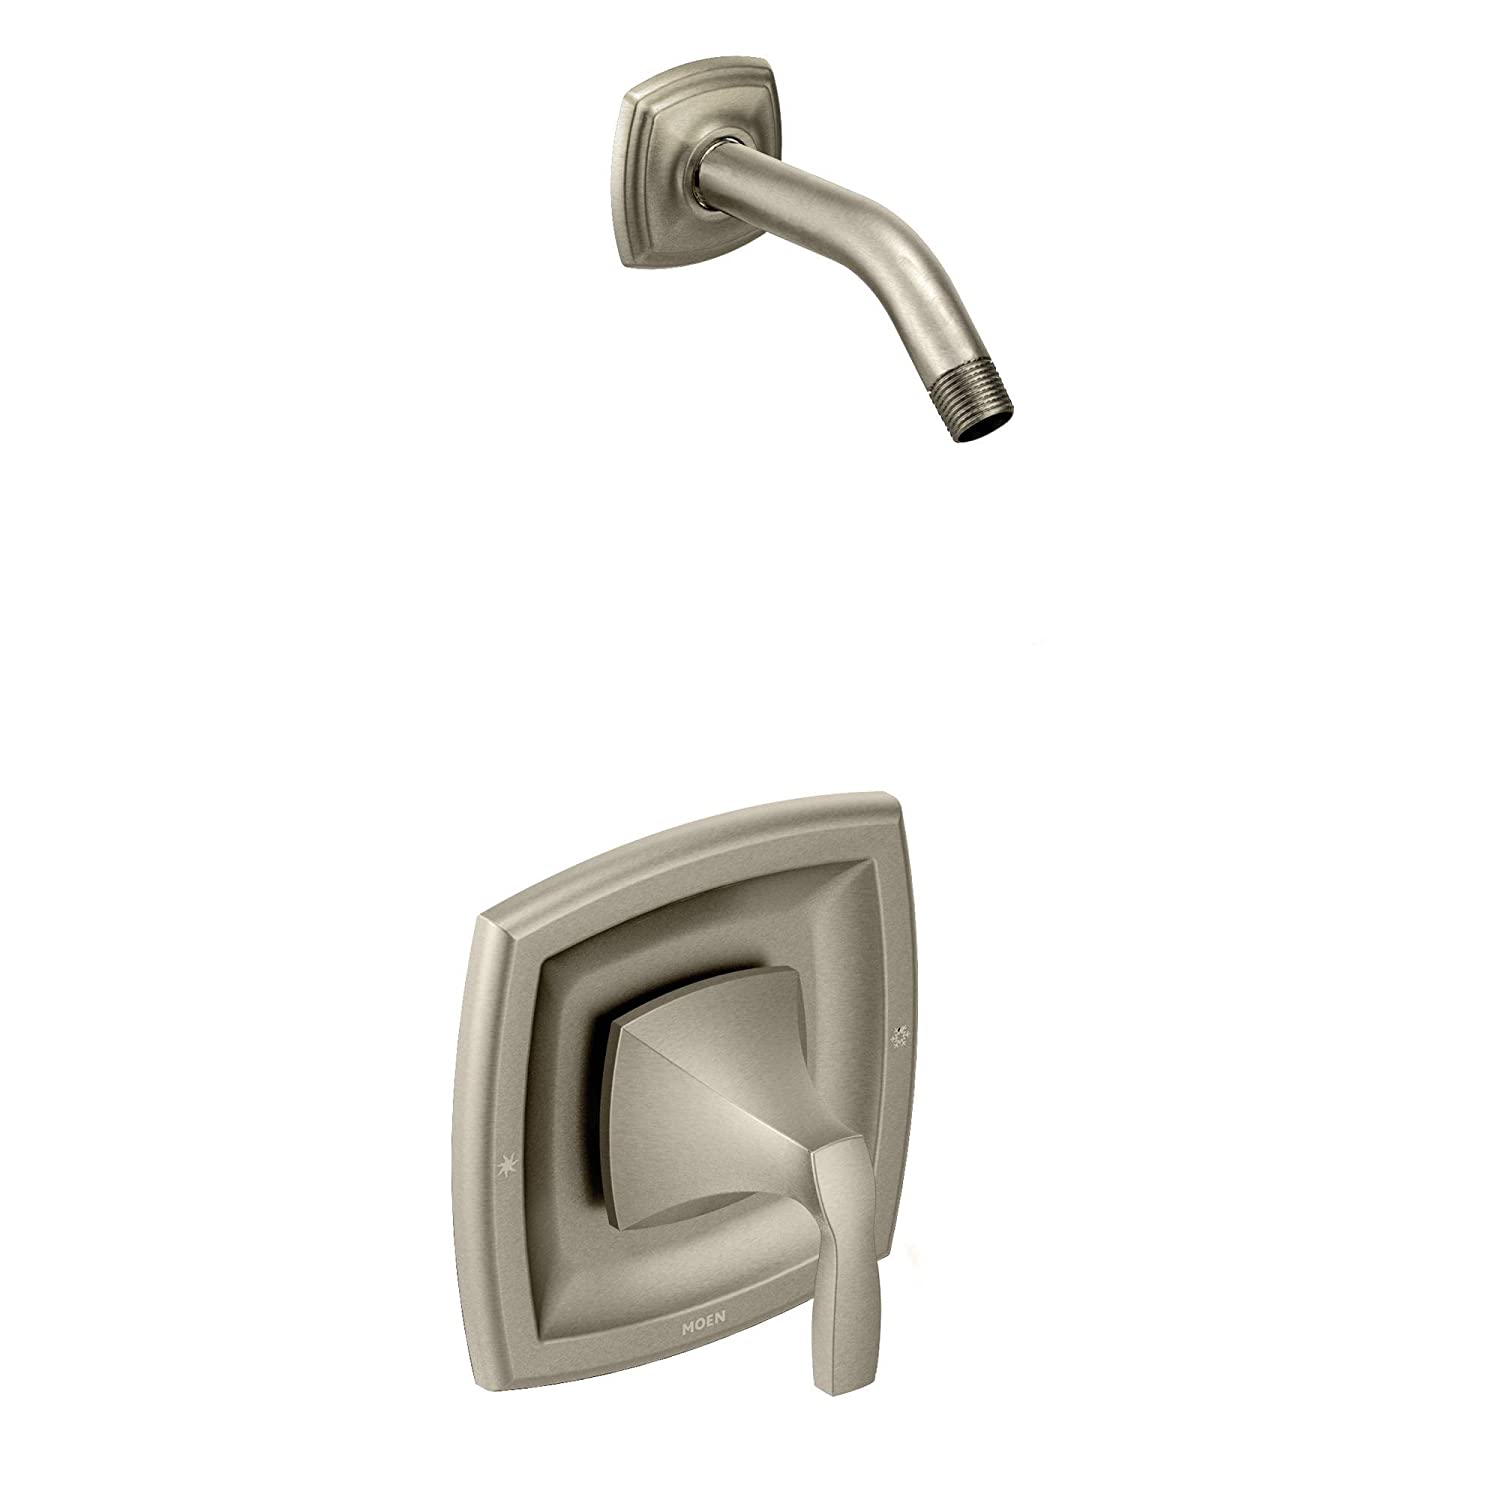 Moen T2692NHBN Voss Posi-Temp Tub Shower Valve Trim without Showerhead,Valve Required, Brushed Nickel